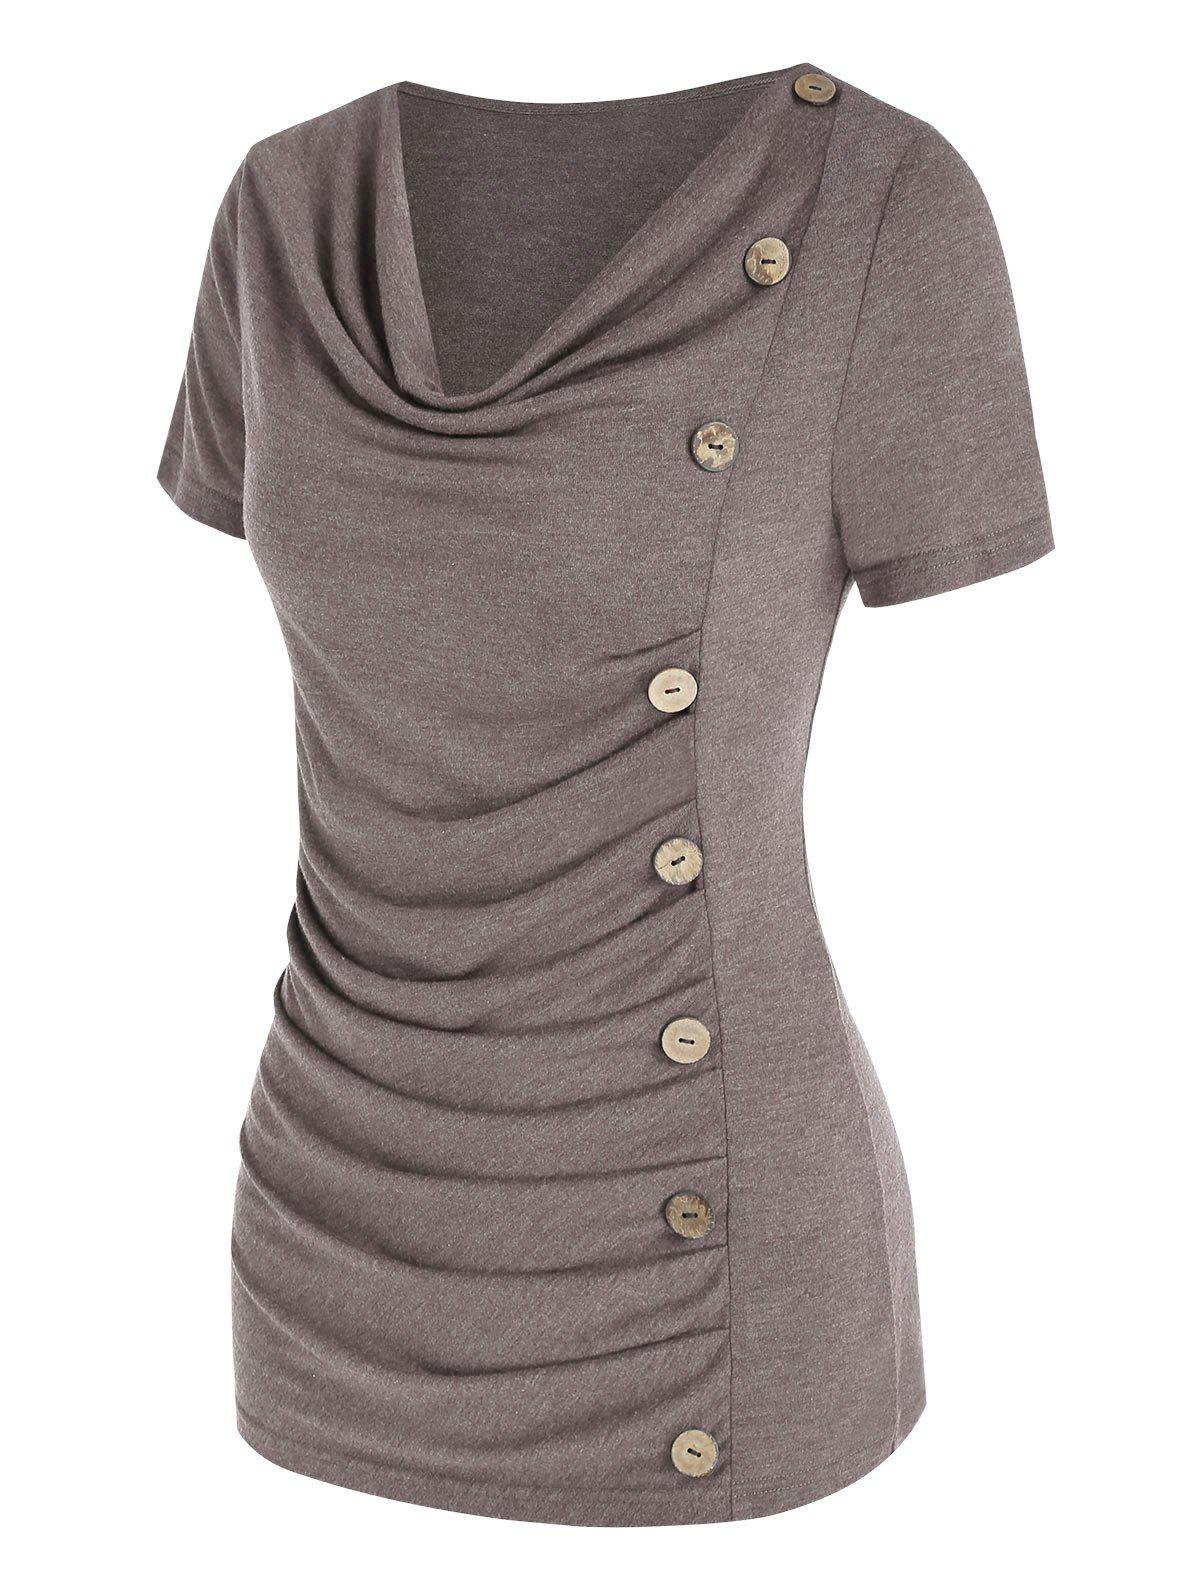 Cowl Neck Ruched Button Asymmetrical T Shirt - LIGHT COFFEE S